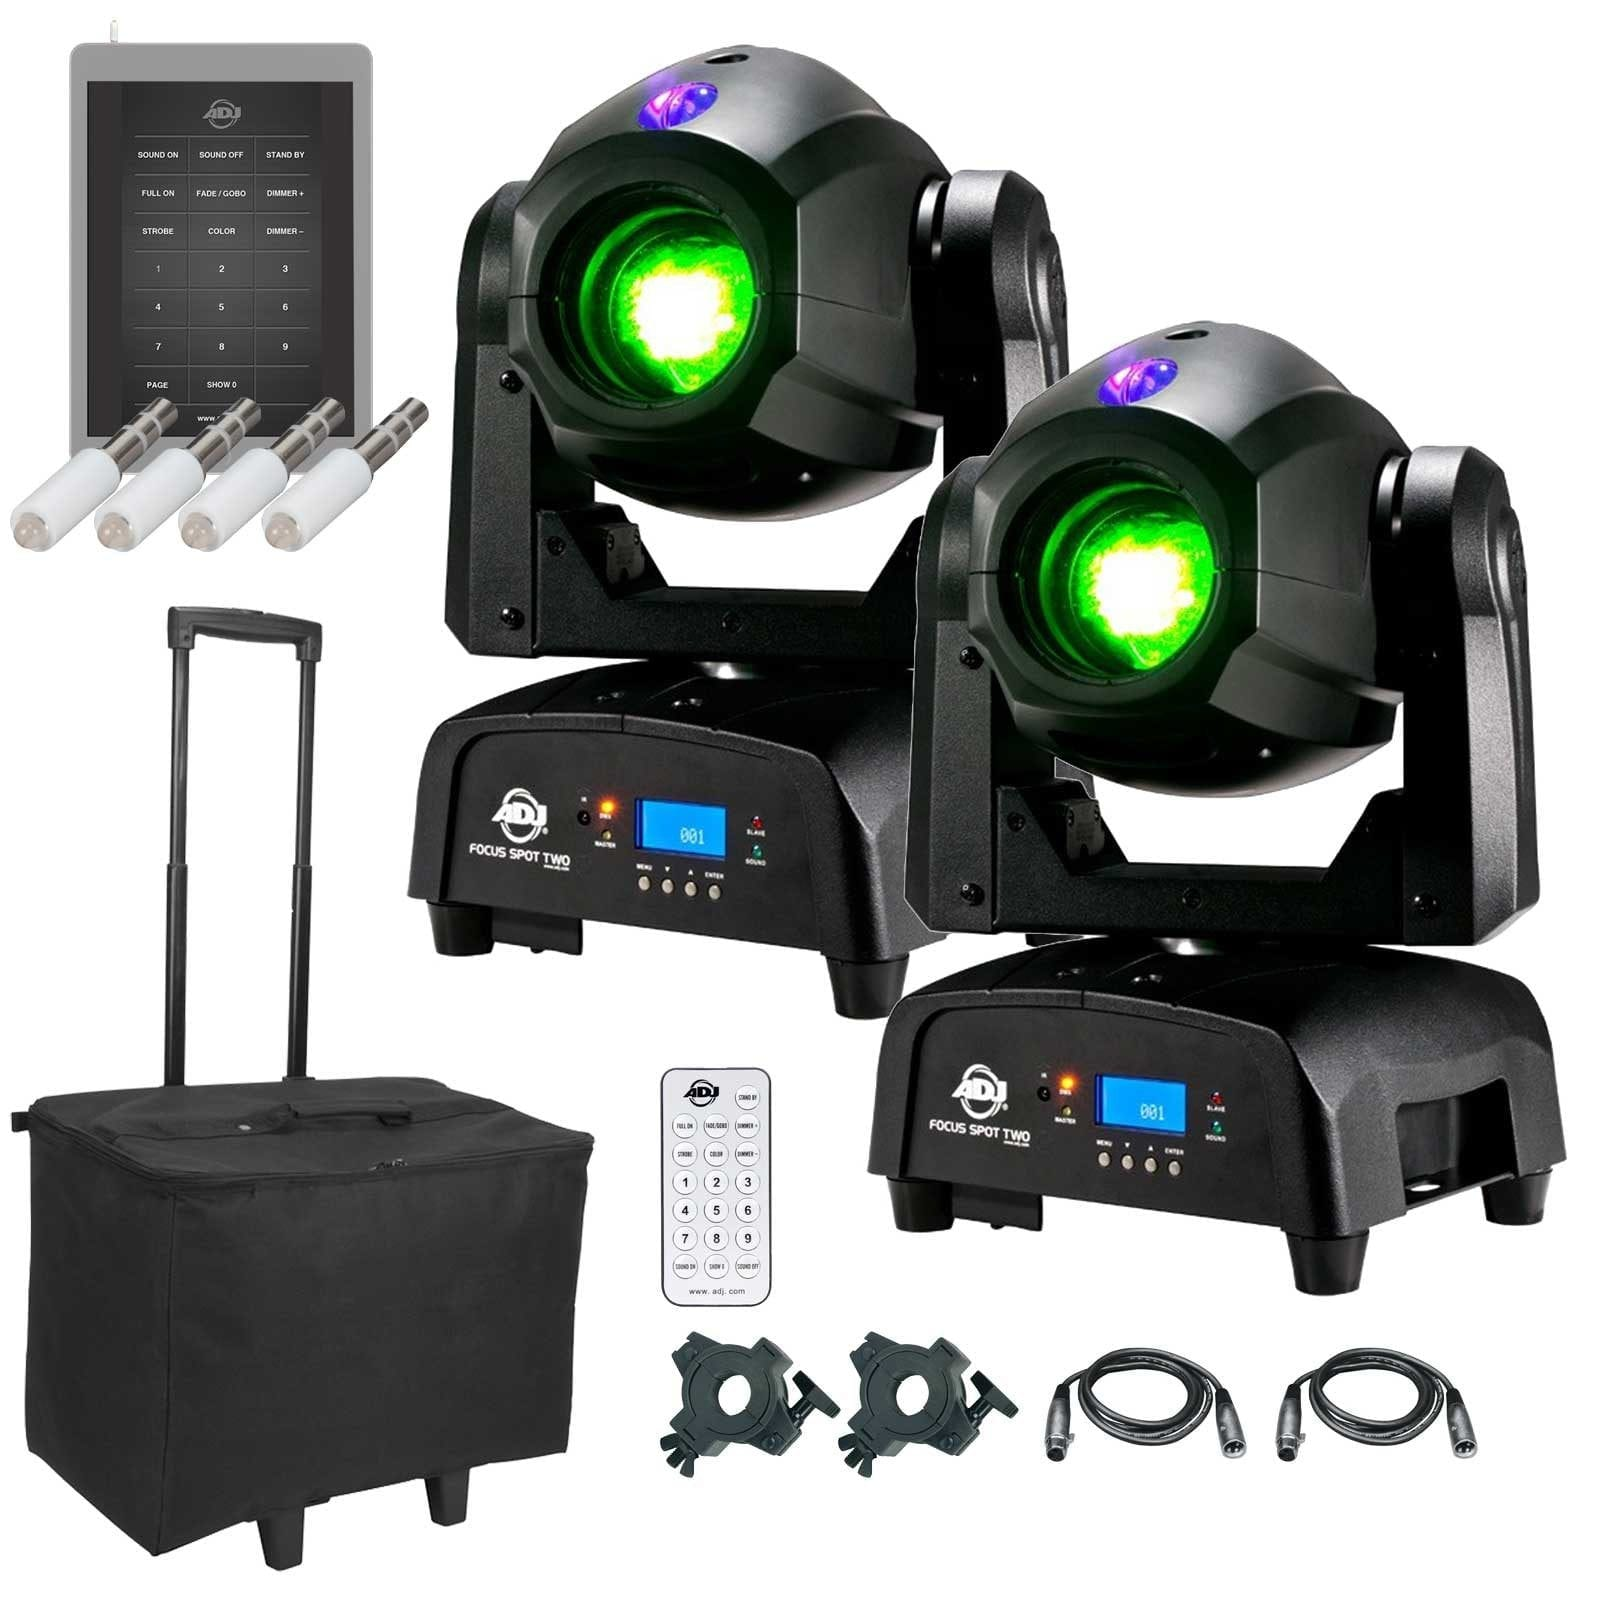 2-american-dj-focus-spot-two-high-powered-75w-led-moving-head-with-motorized-focus-package-a9a